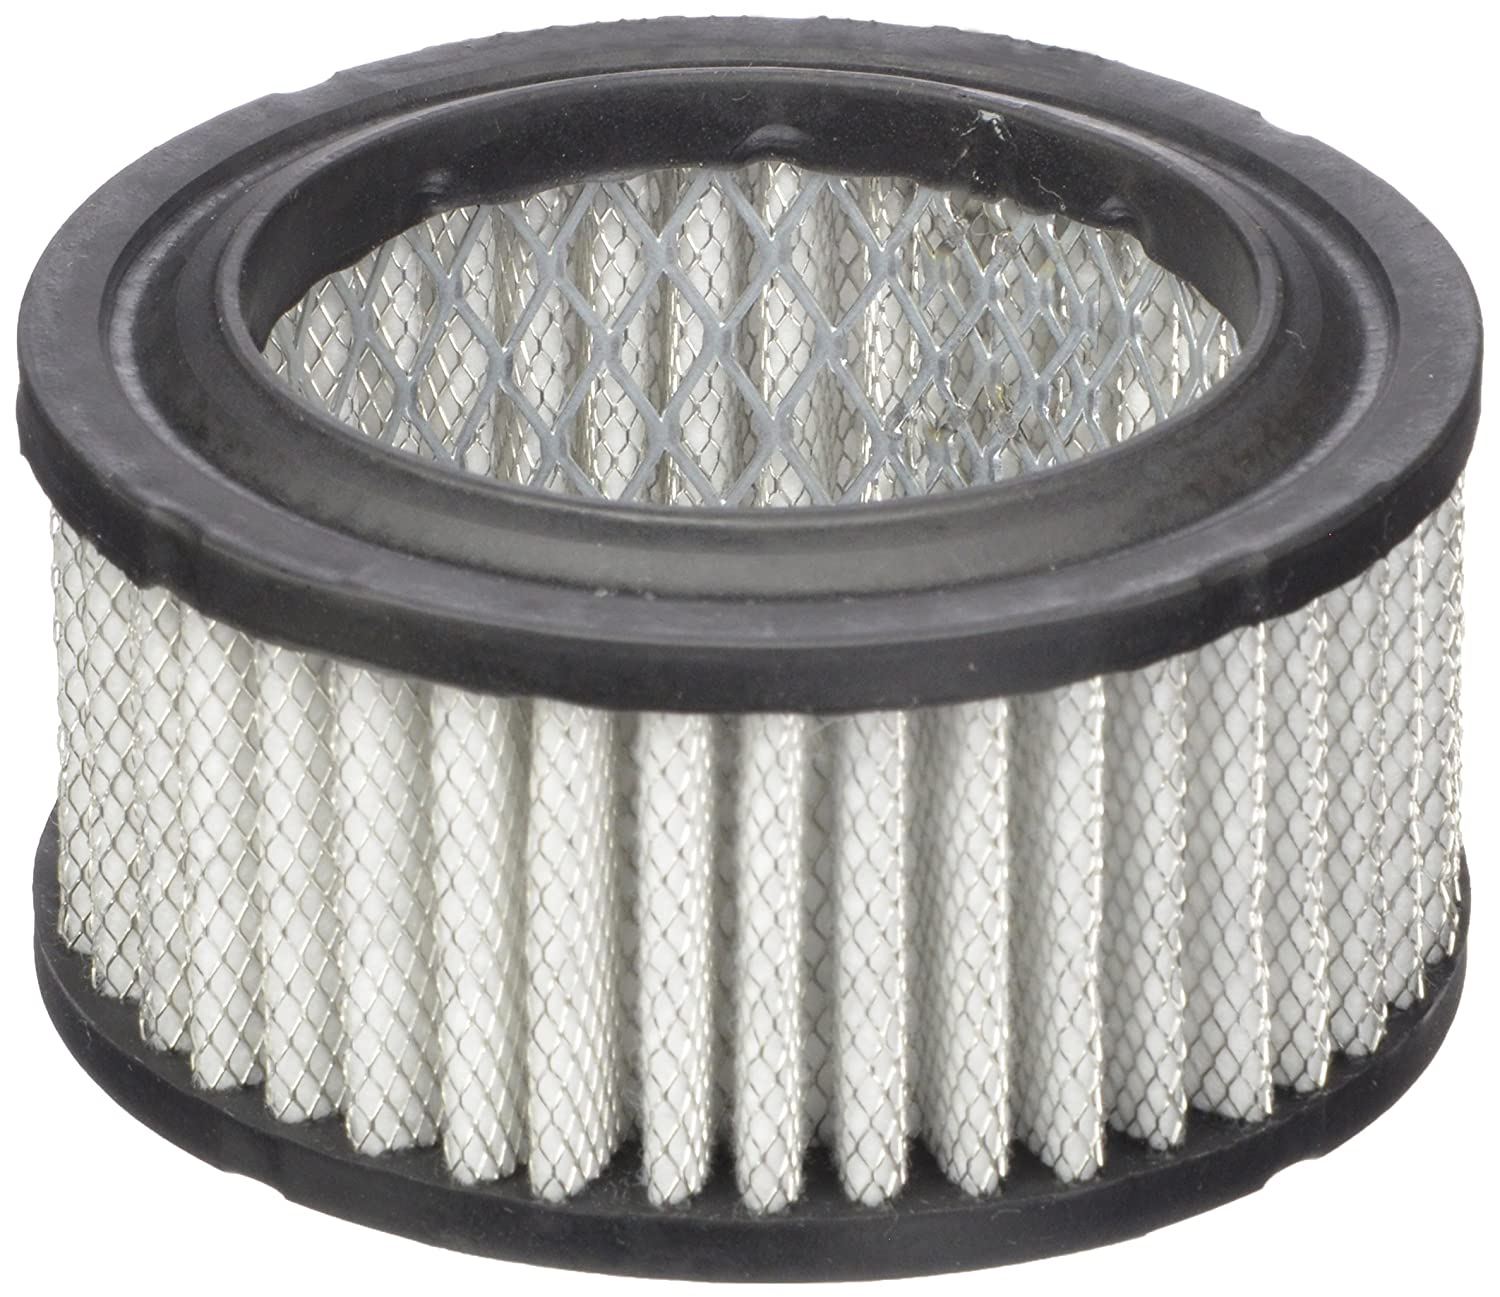 Killer Filter Brand Replacement for Ingersoll Rand 32170979 (Pack of 4) kf32170979